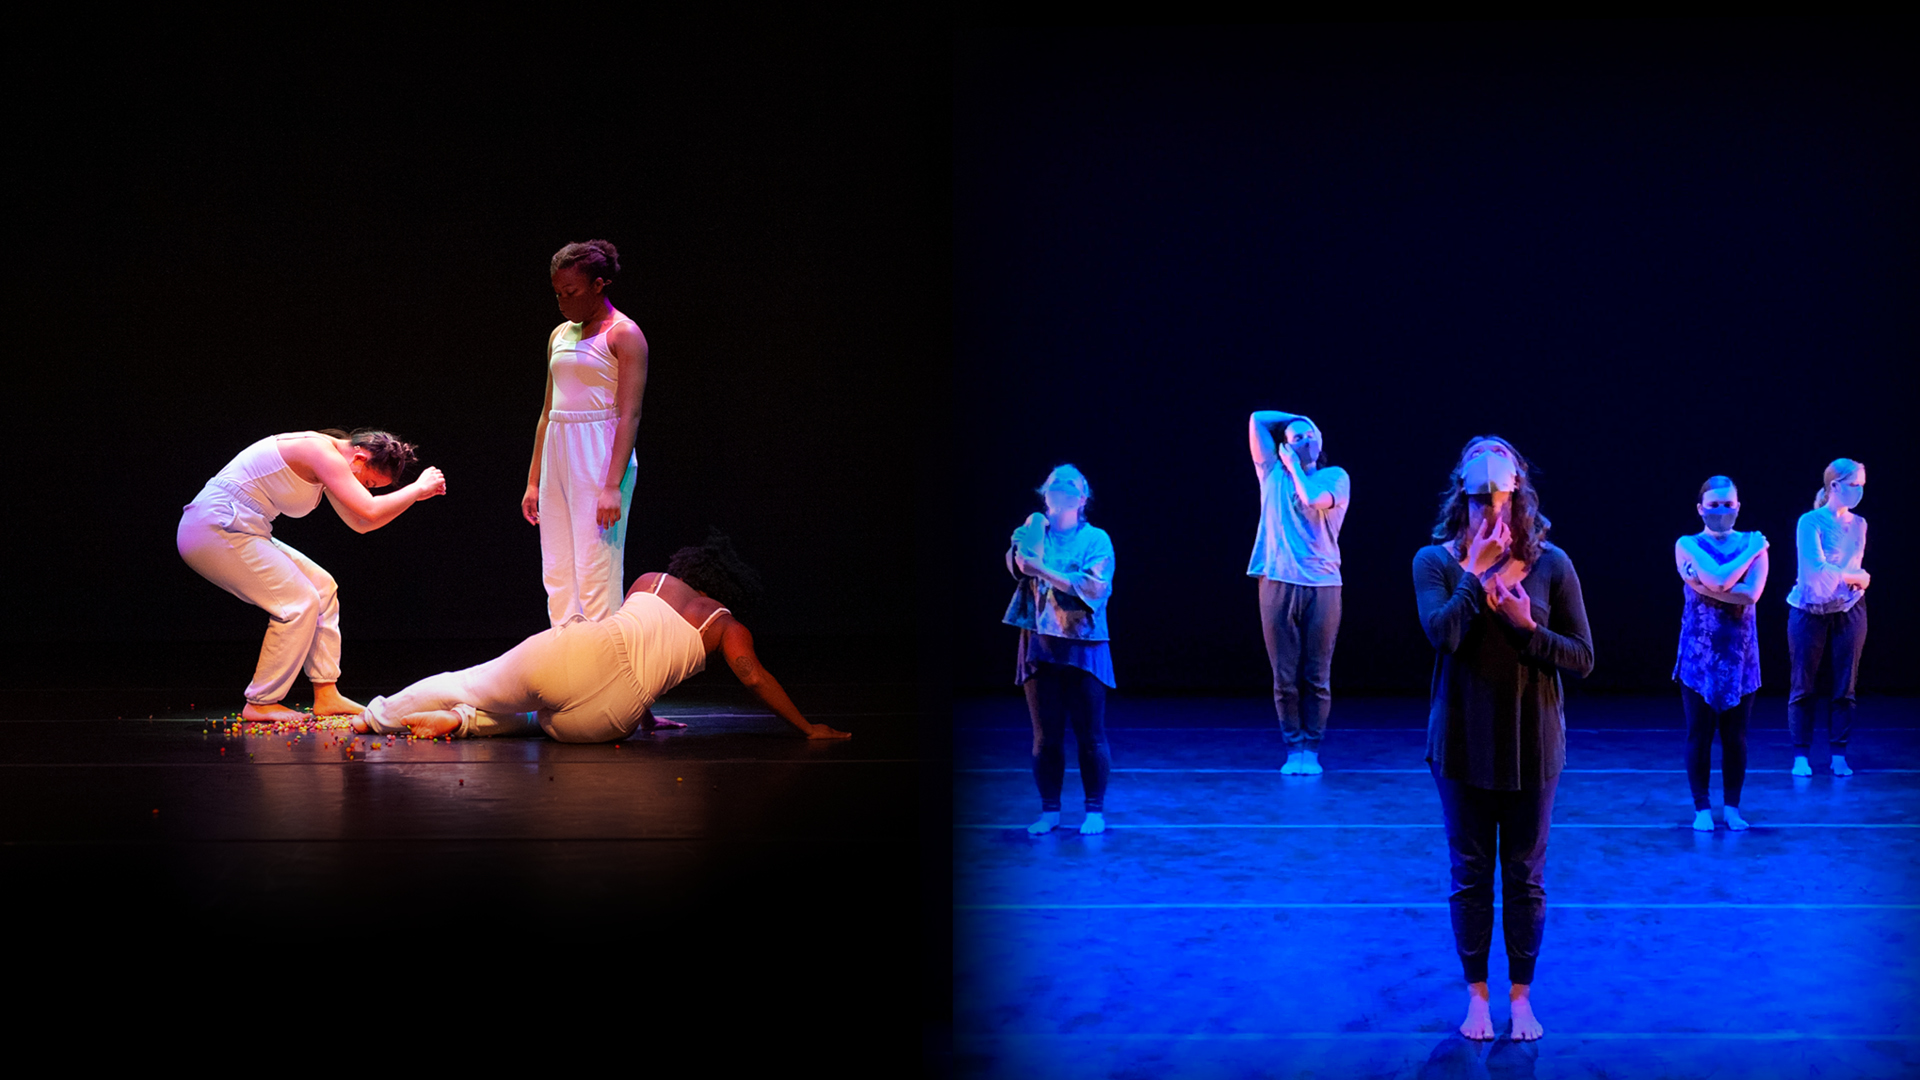 Two photos of groups of dancers in performance.